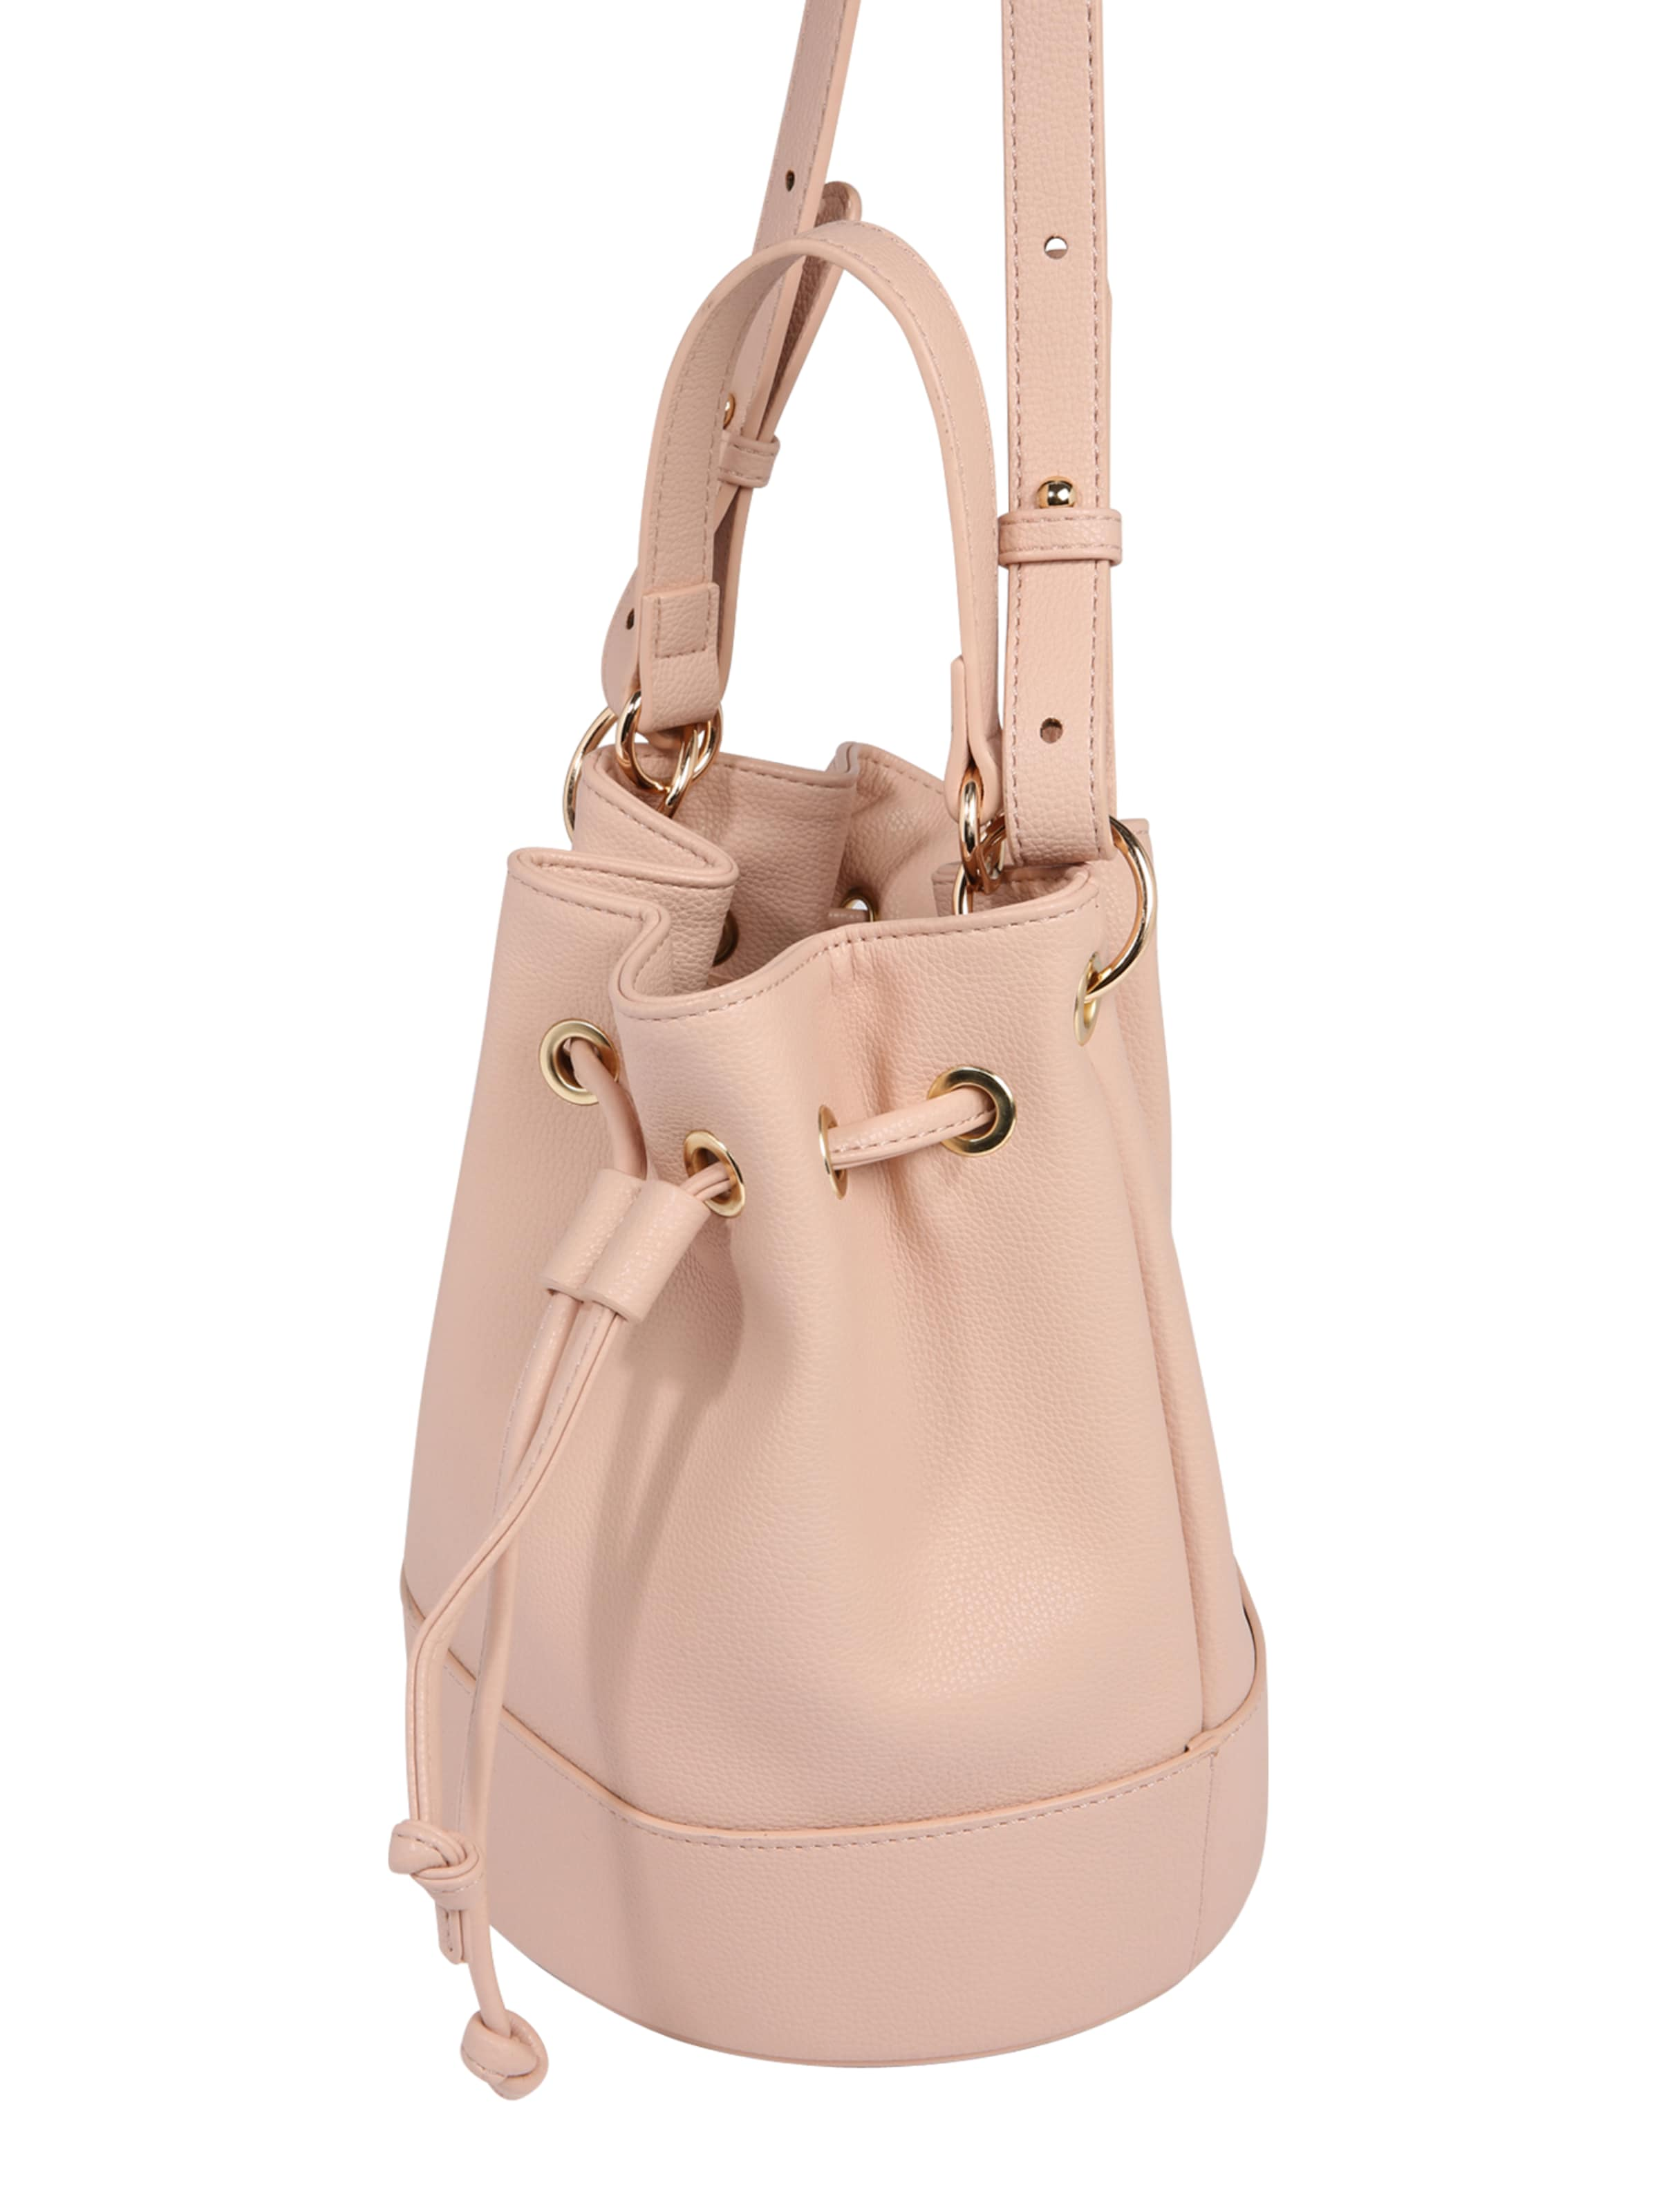 About Nude Tasche In You 'liliana' 8wnN0vm